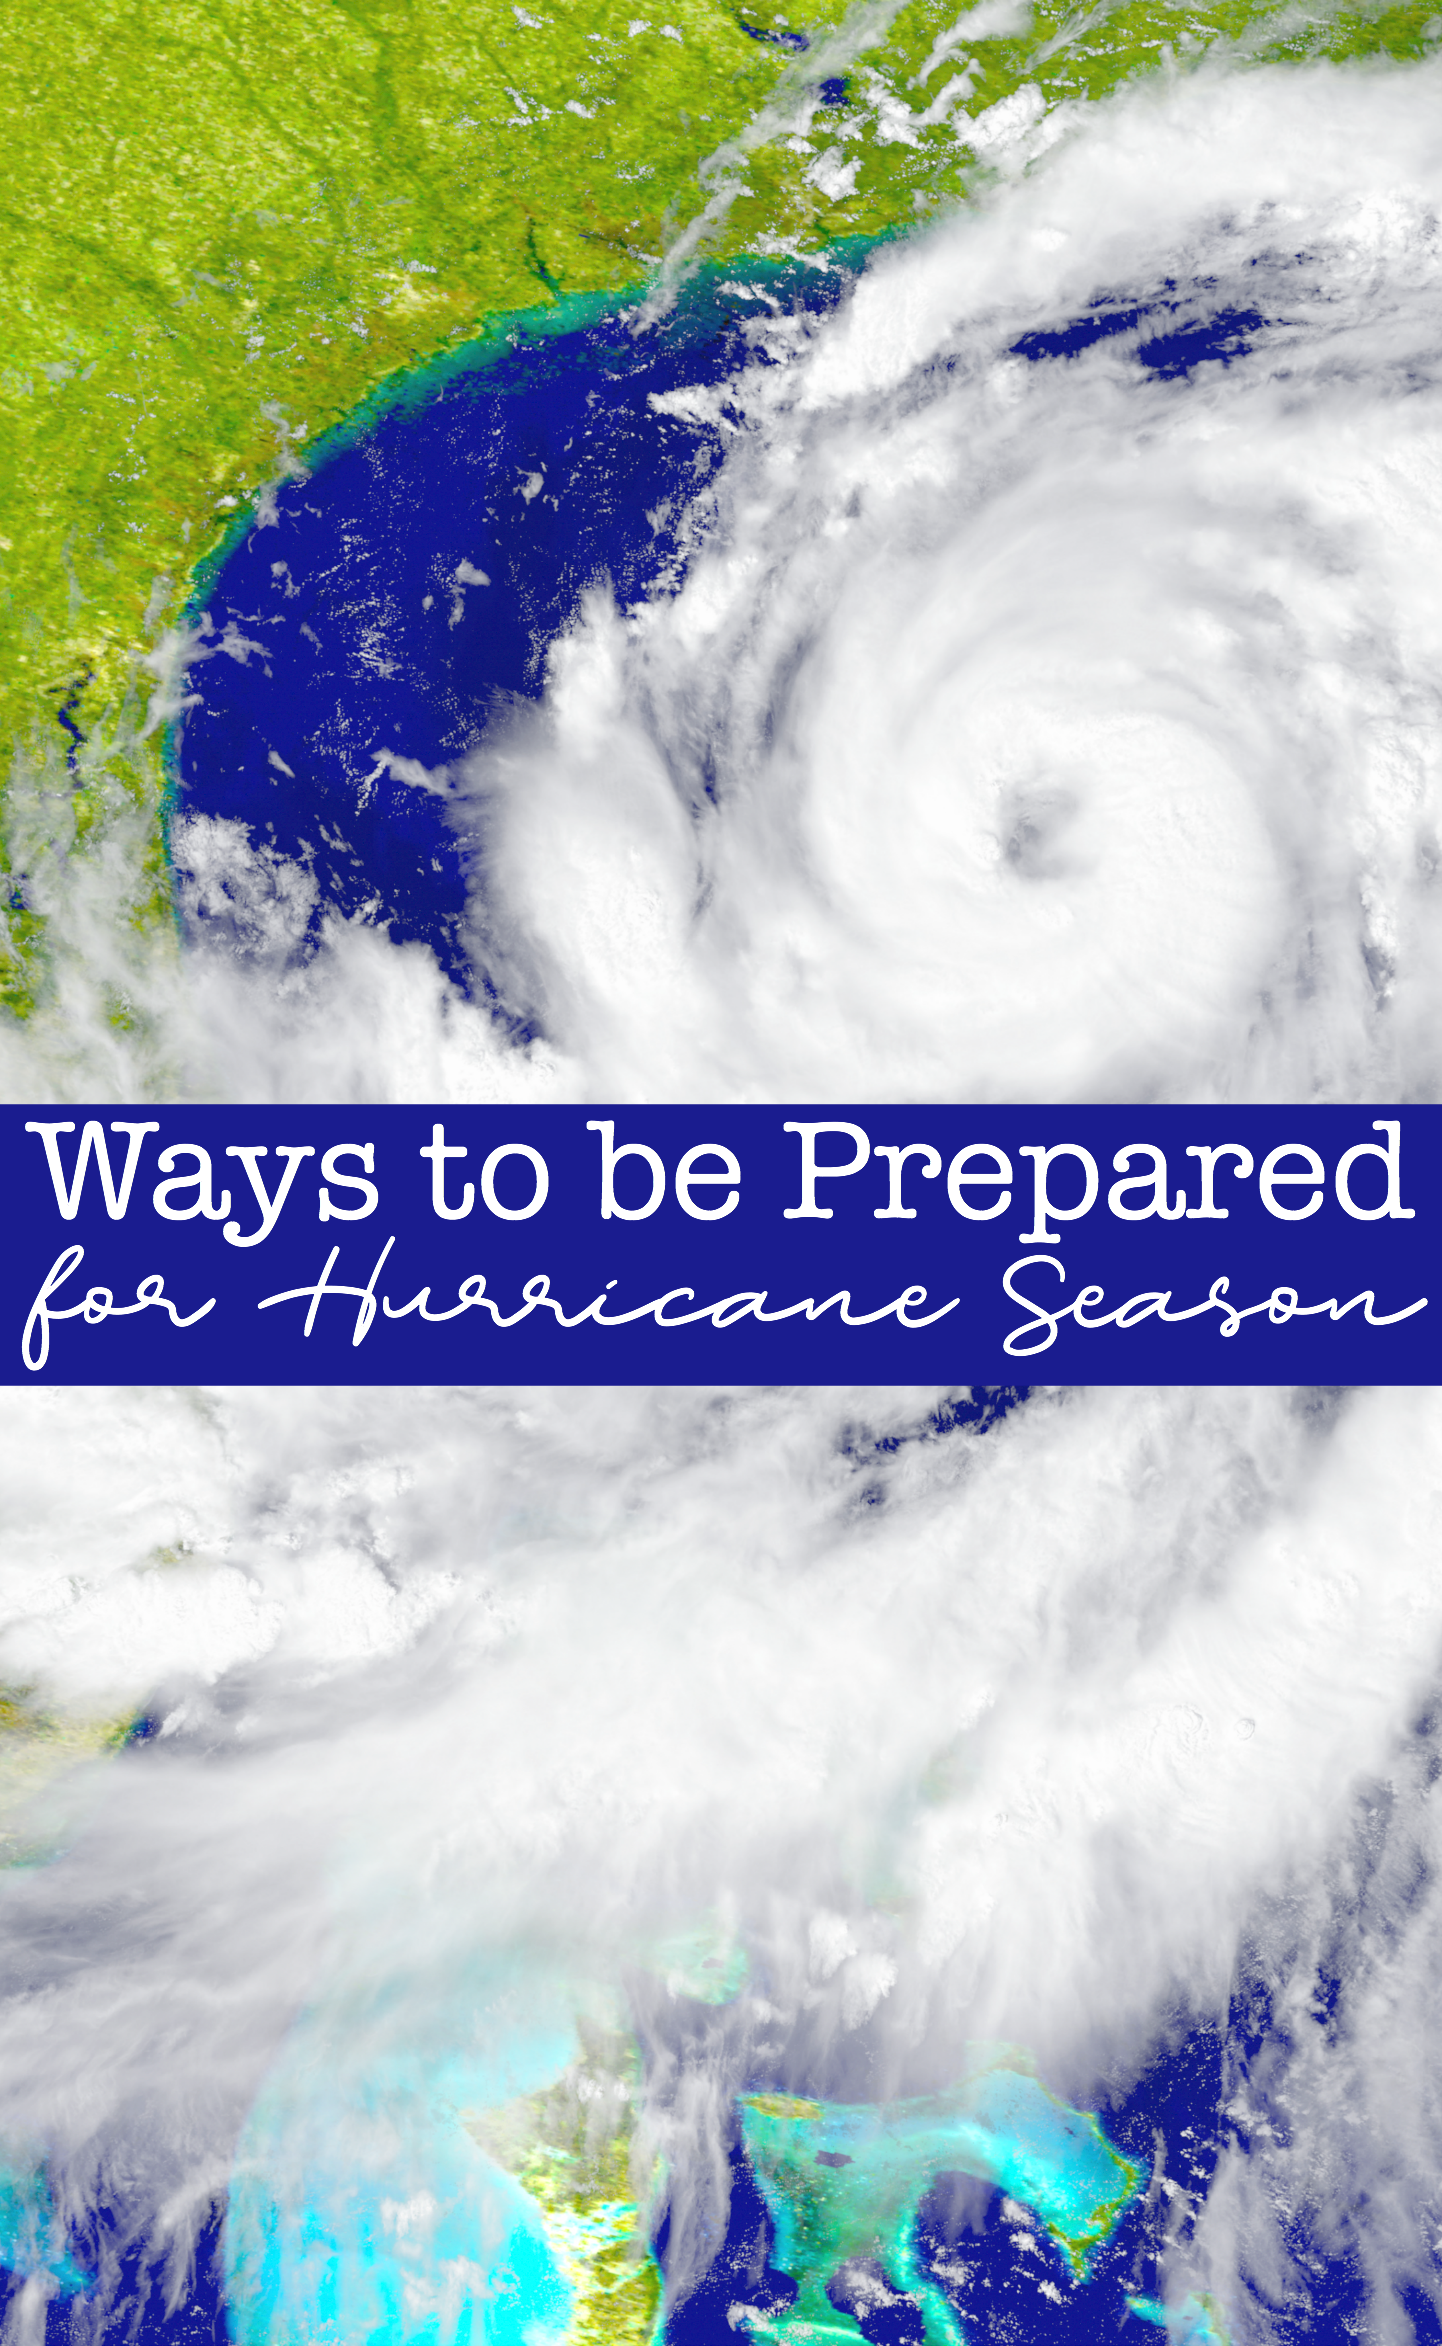 Hurricane season is approaching and the best thing we can do is get ready for it. Here are 5 ways to be prepared for hurricane season to ensure your family's safety.